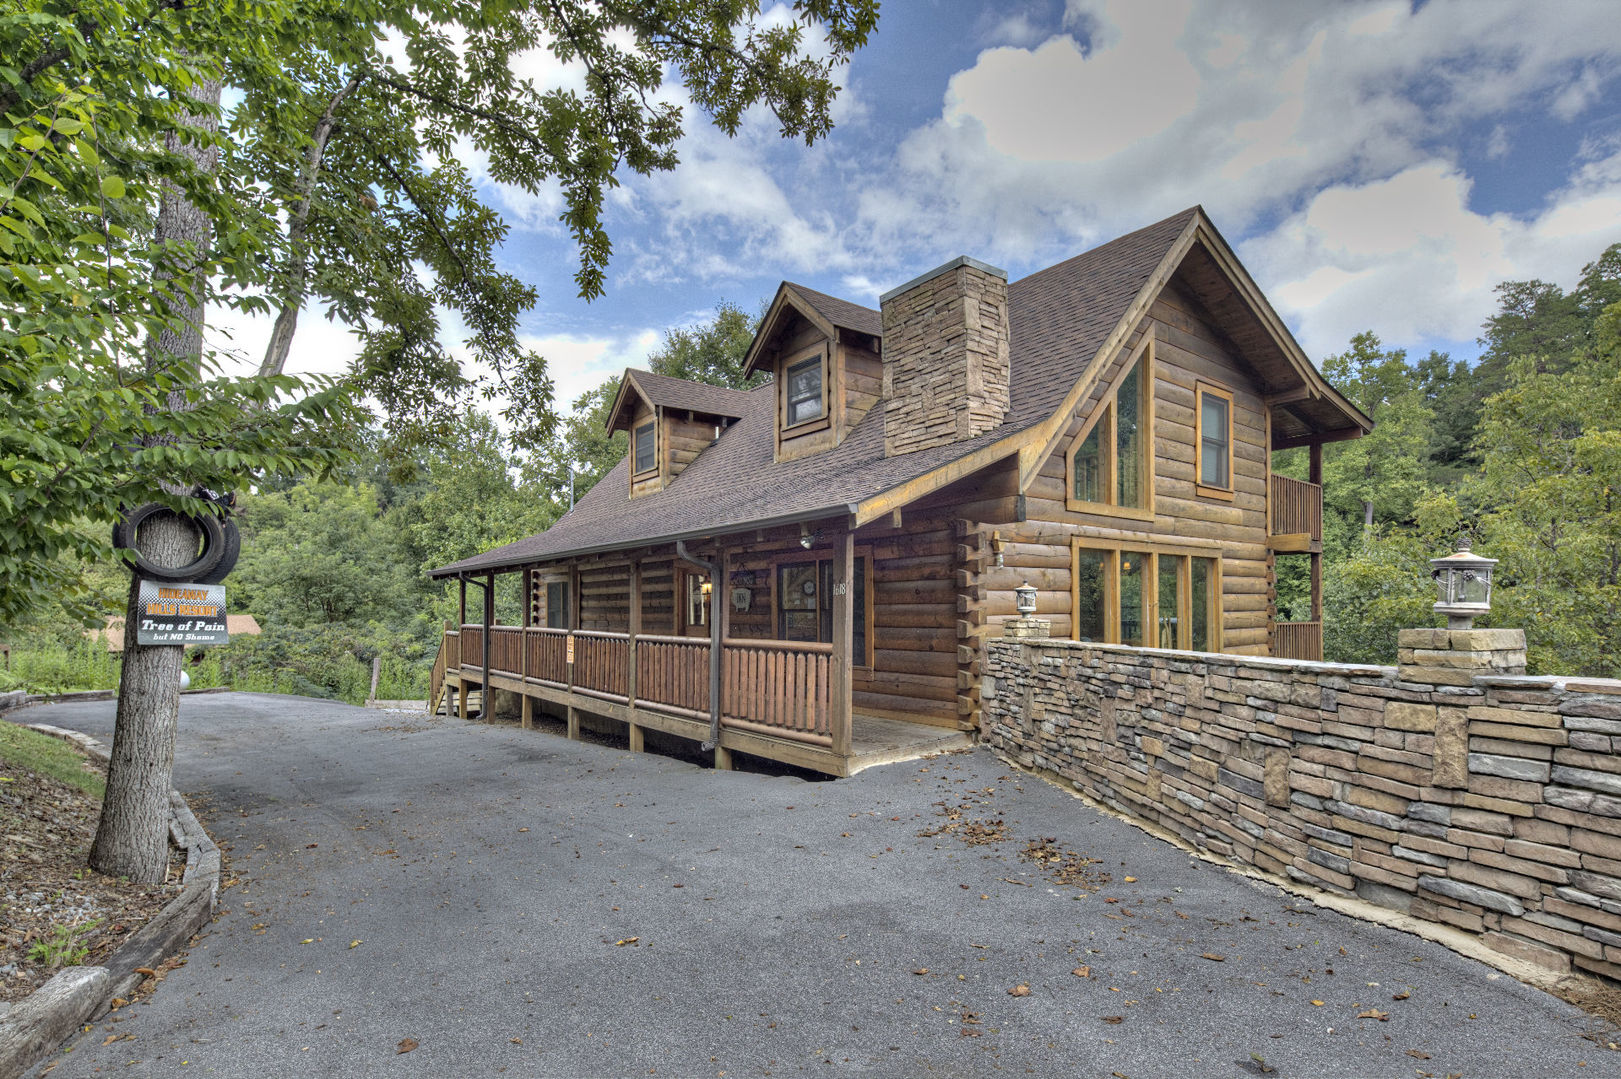 Eagle property management wild hog inn in sevierville for Gatlinburg cabins with fishing access